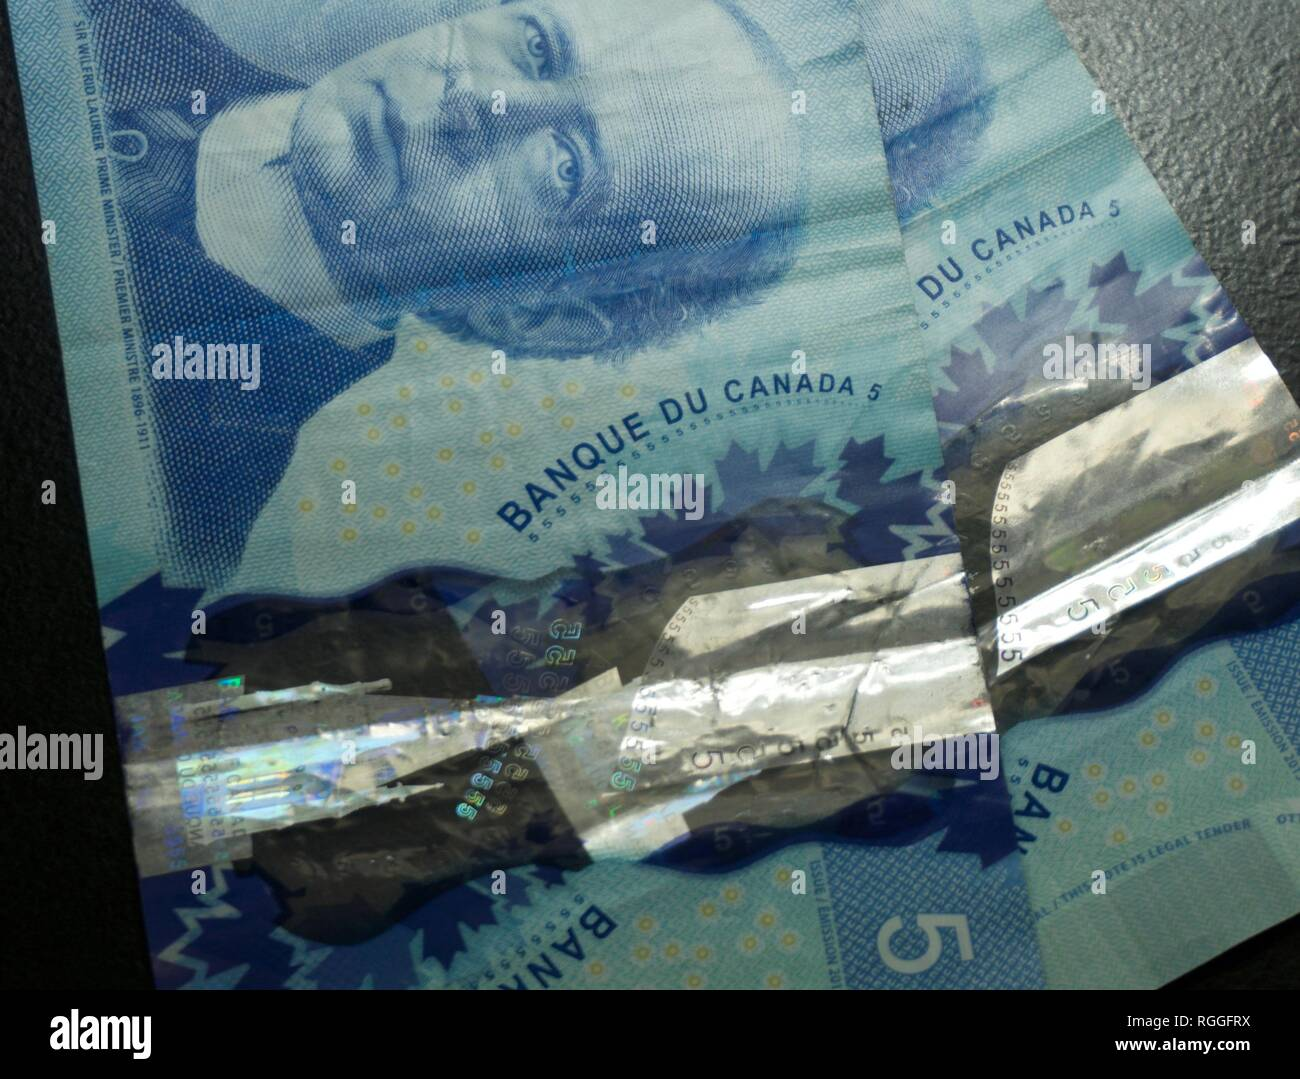 Canadian Five Dollar Bills - Stock Image